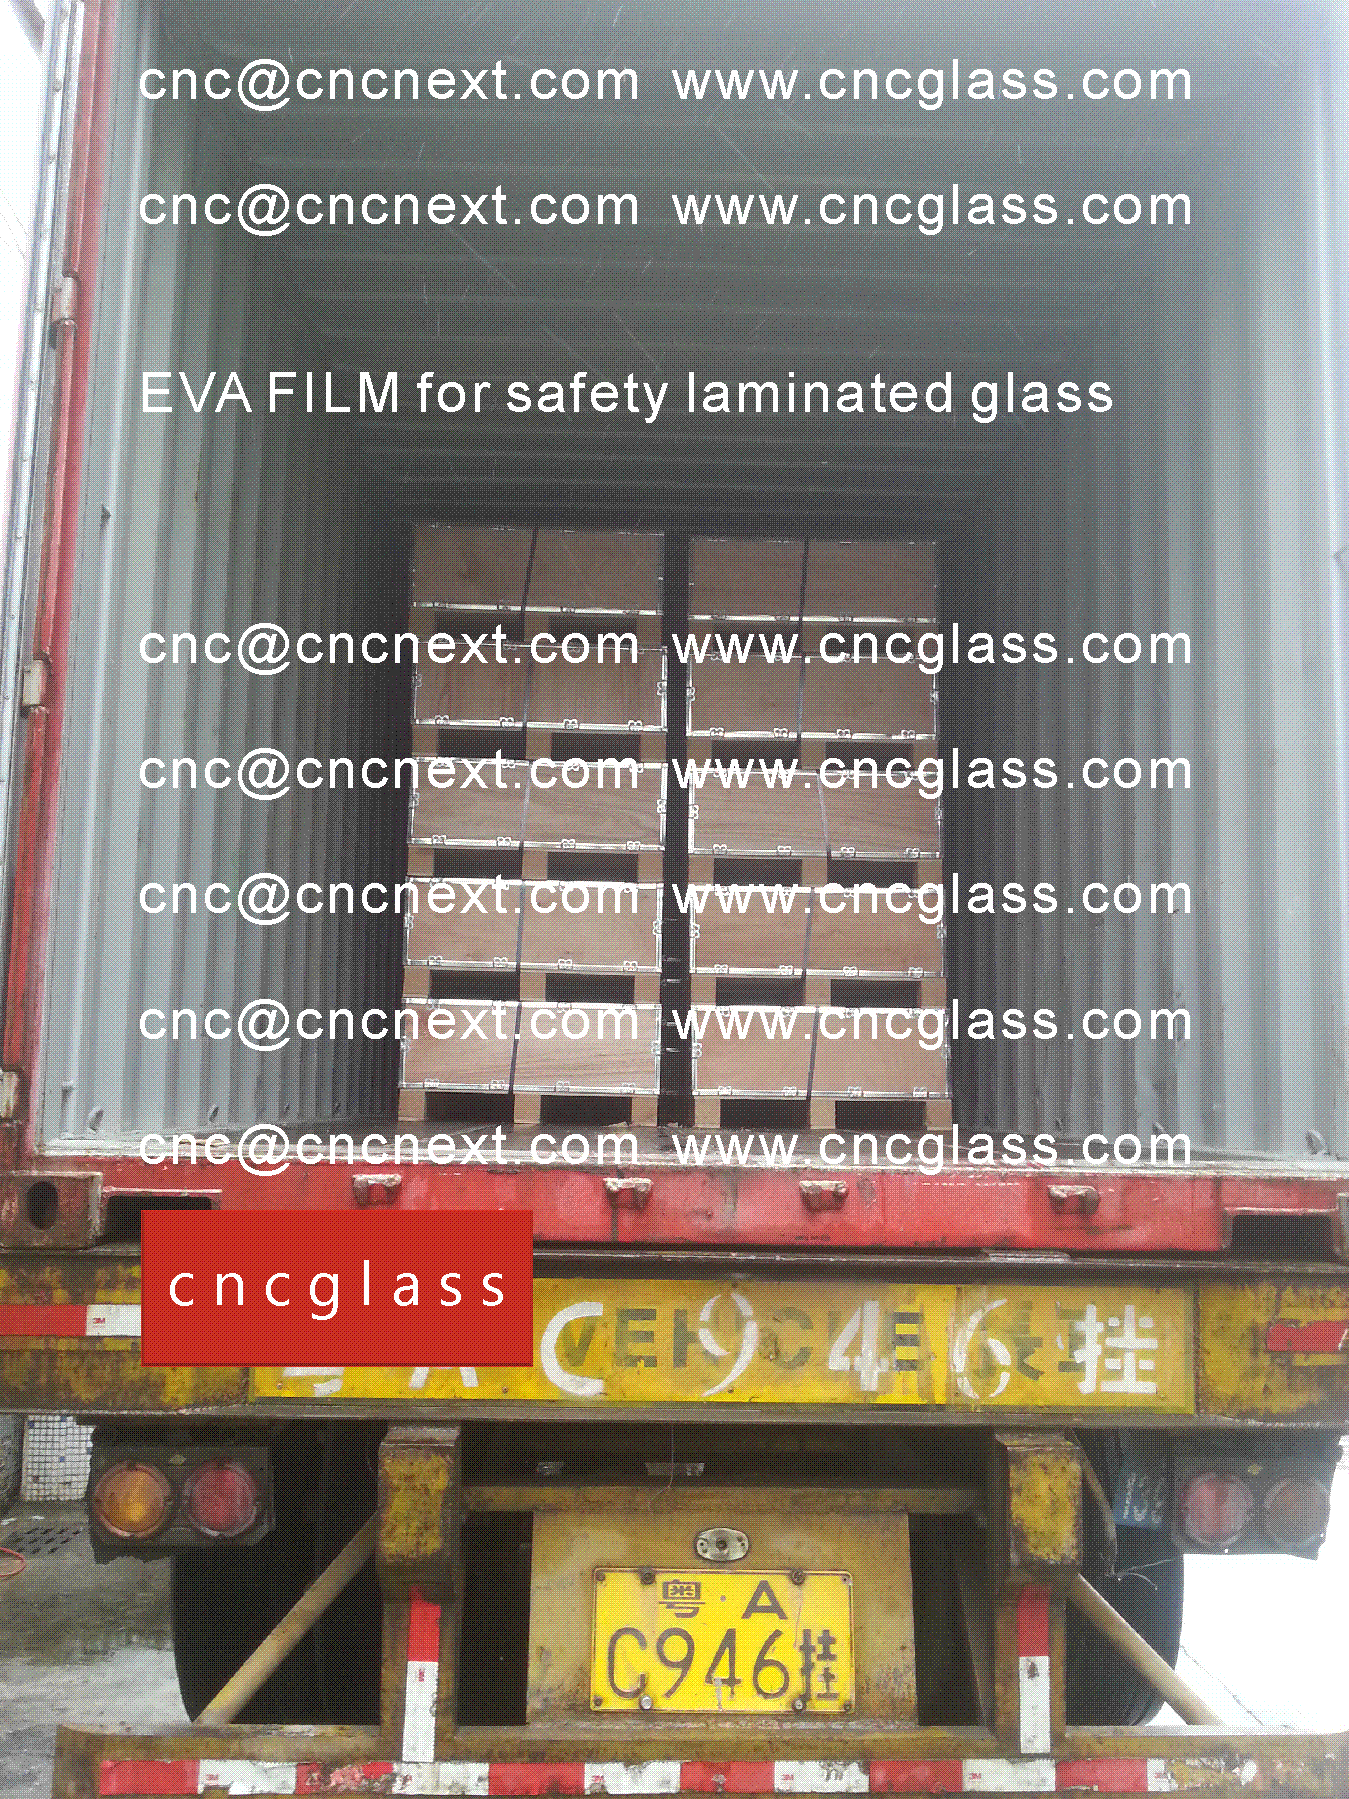 01 EVALAM INATING FILM LOADING CONTAINER (SAFETY LAMINATED GLASS)